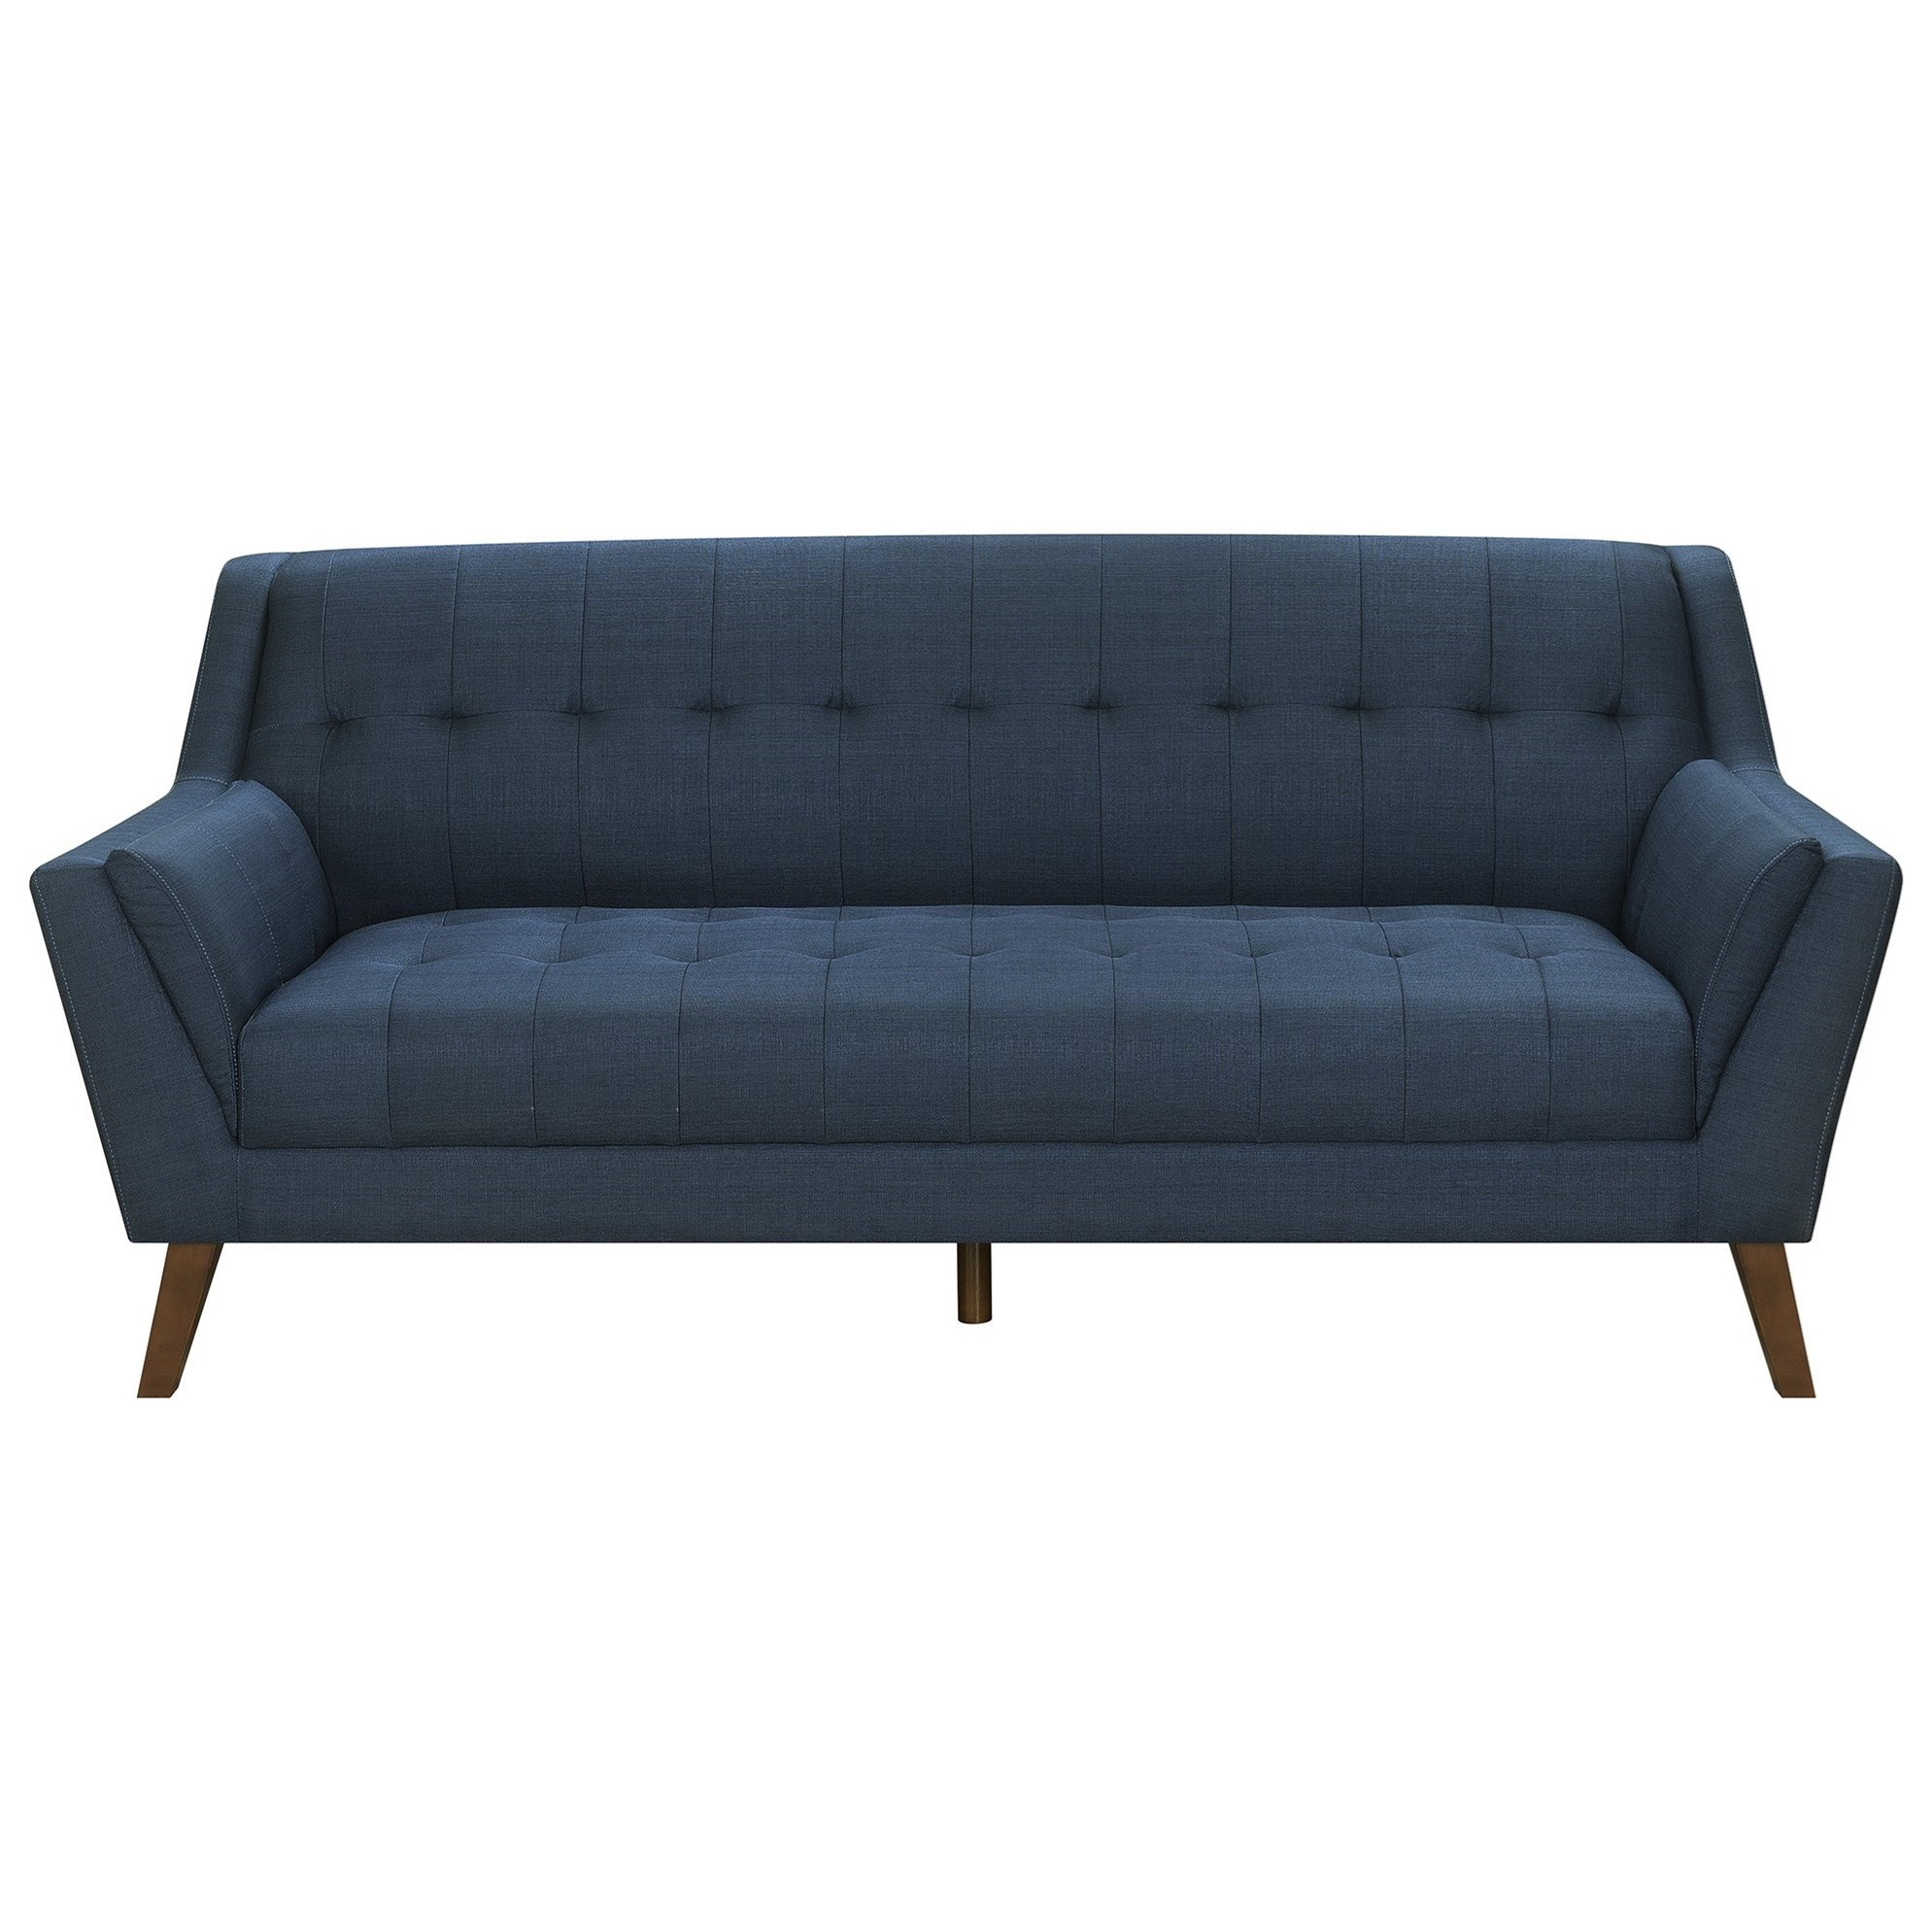 Binetti Loveseat by Emerald at Northeast Factory Direct